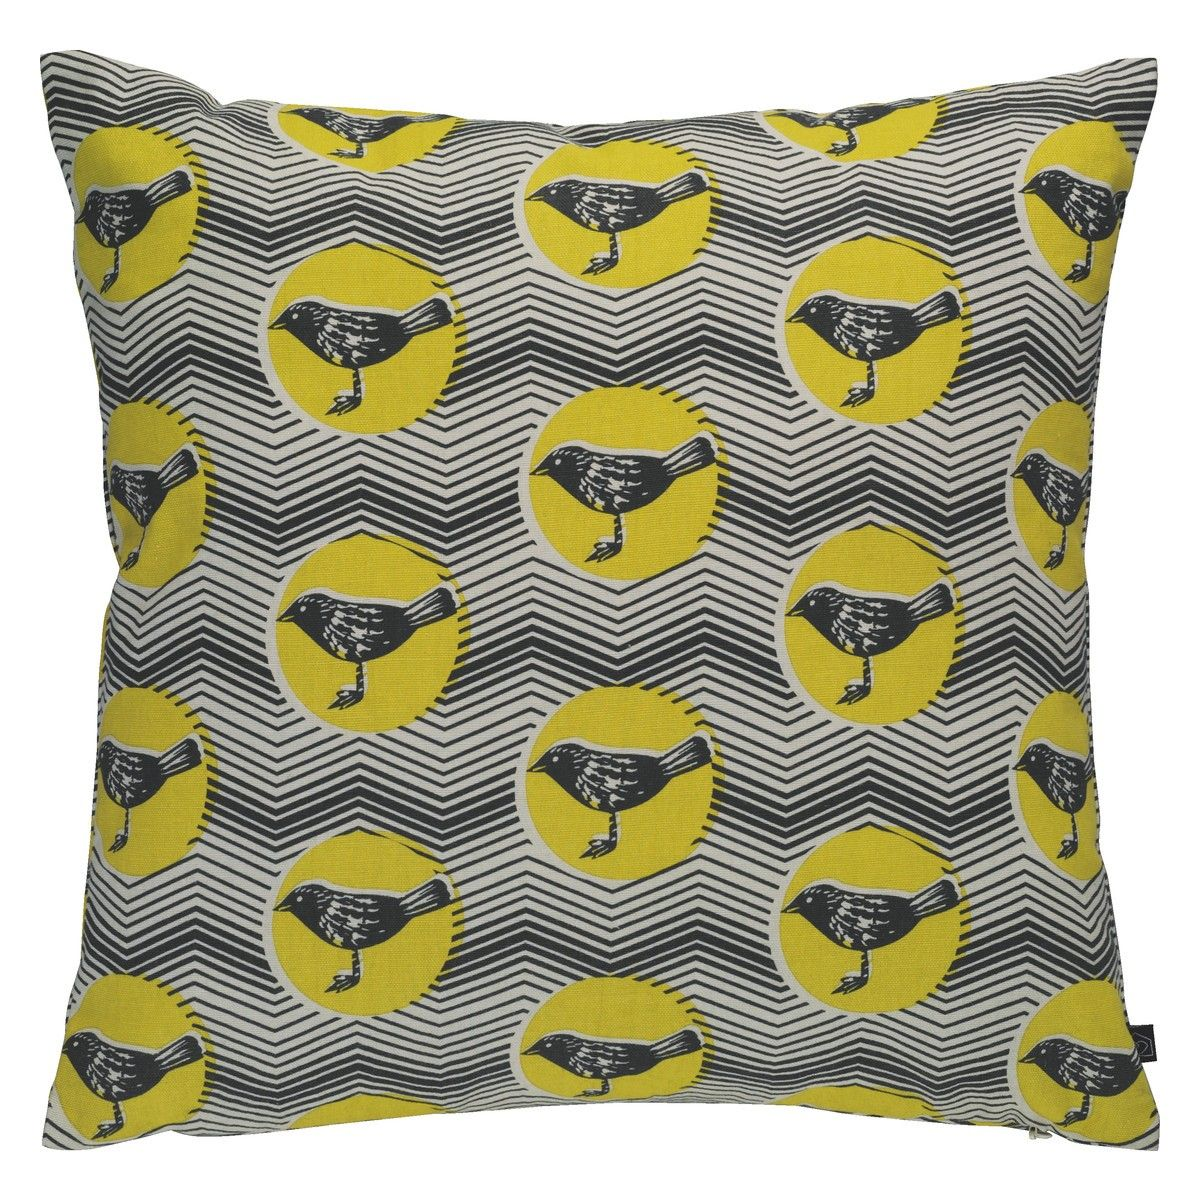 POLKA BIRD Yellow Patterned Cushion 45 X 45cm HABITAT